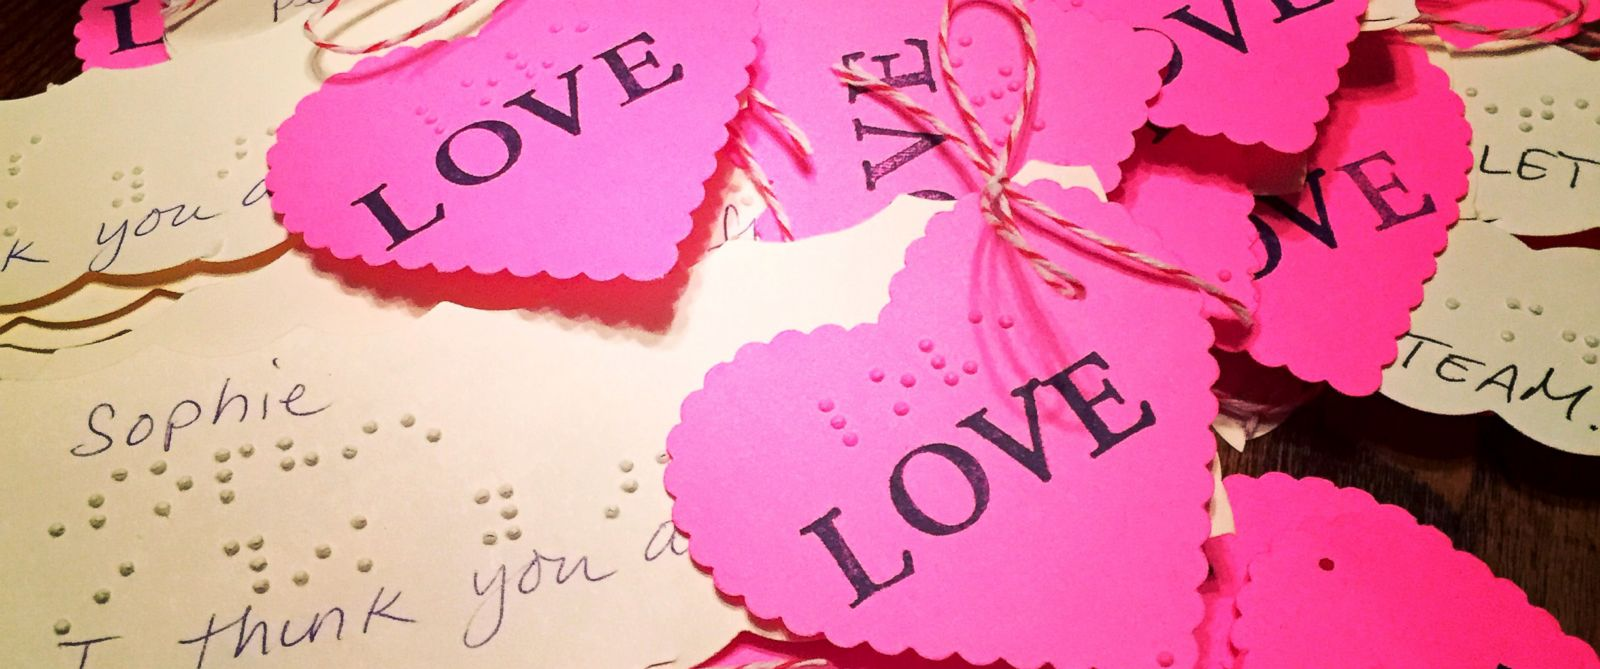 Seattle girl gives classmates sweet braille Valentines